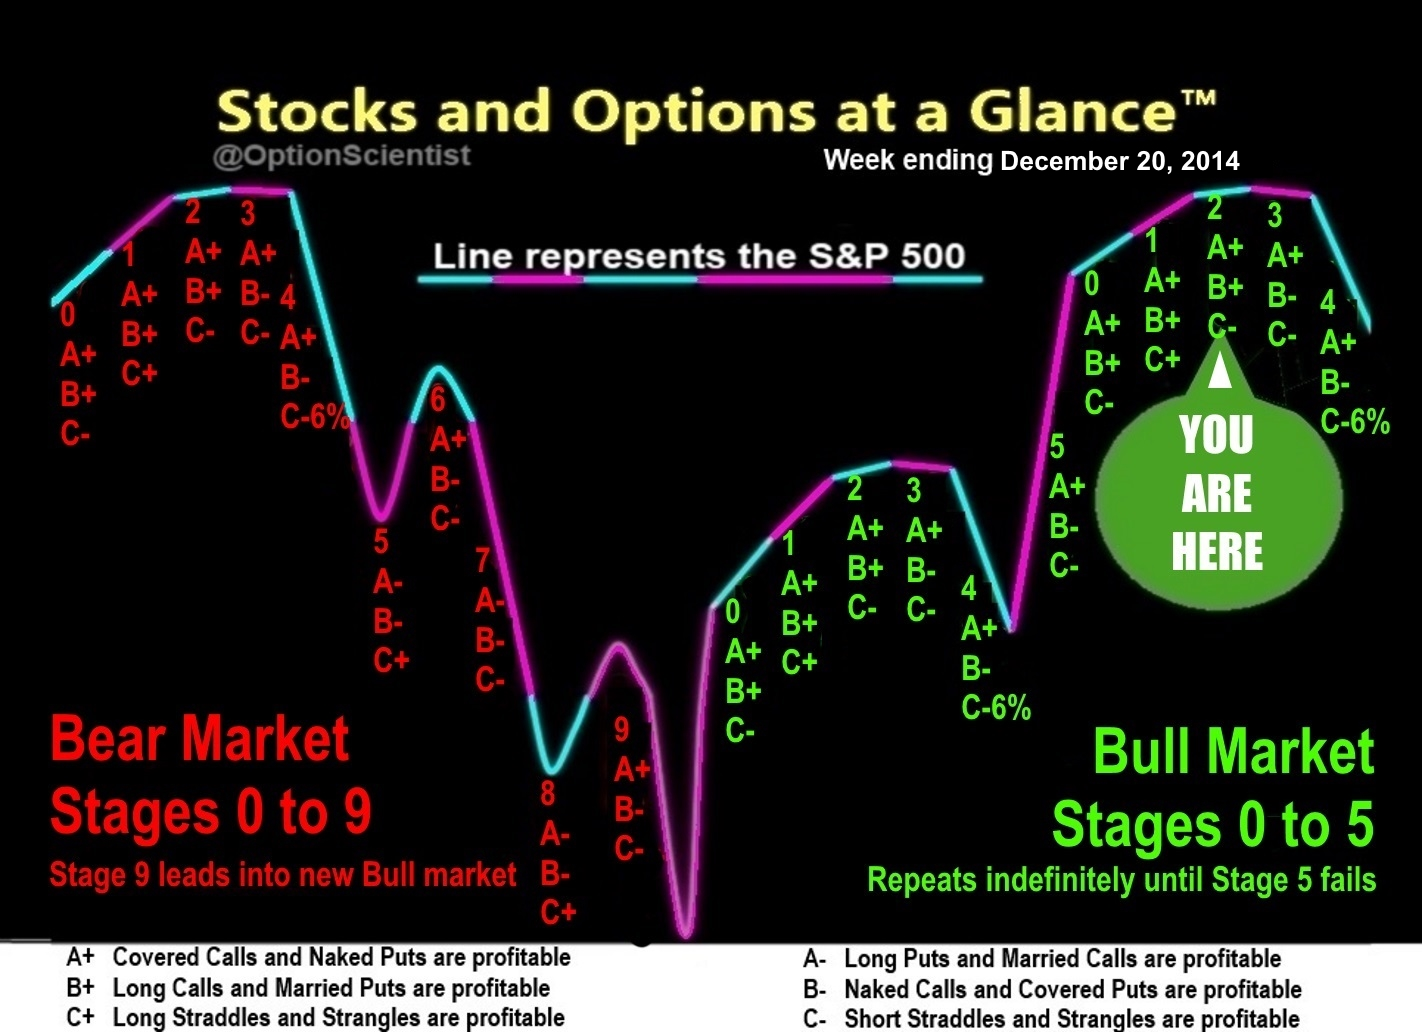 Stocks and Options at a Glance 12-20-14